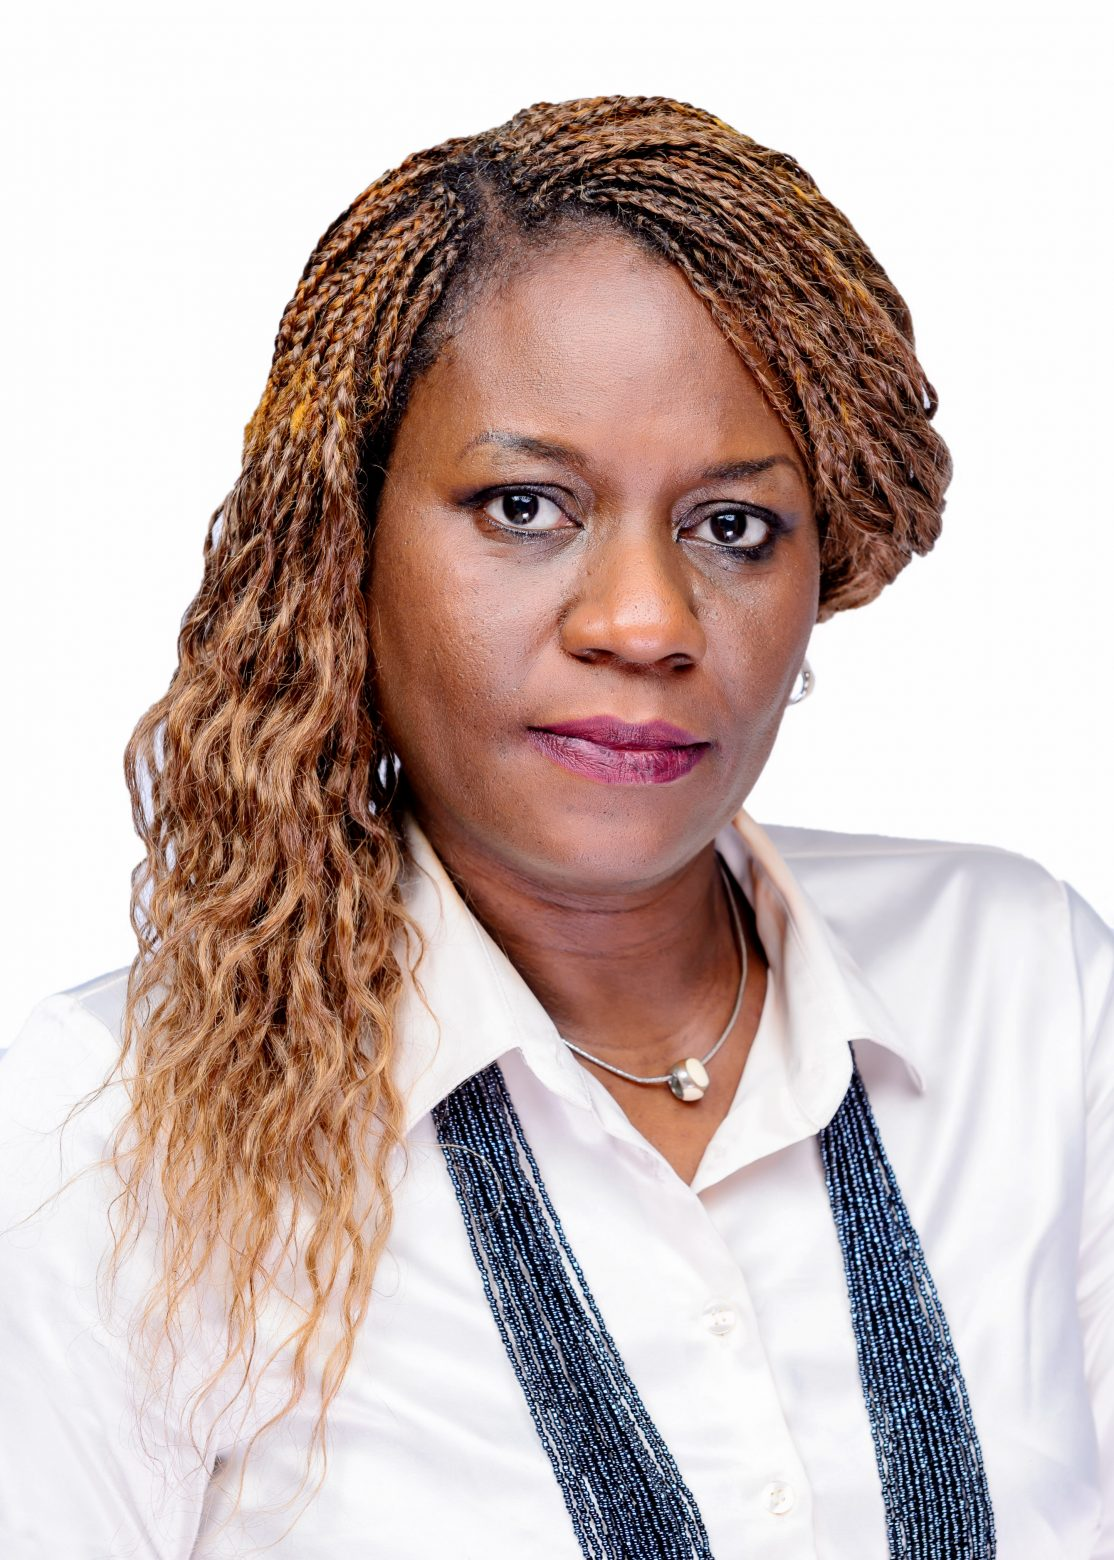 Mrs-Terae-Onyeje-Co-Founder-Chief-Executive-Officer-Wowbii-Interactive.jpg